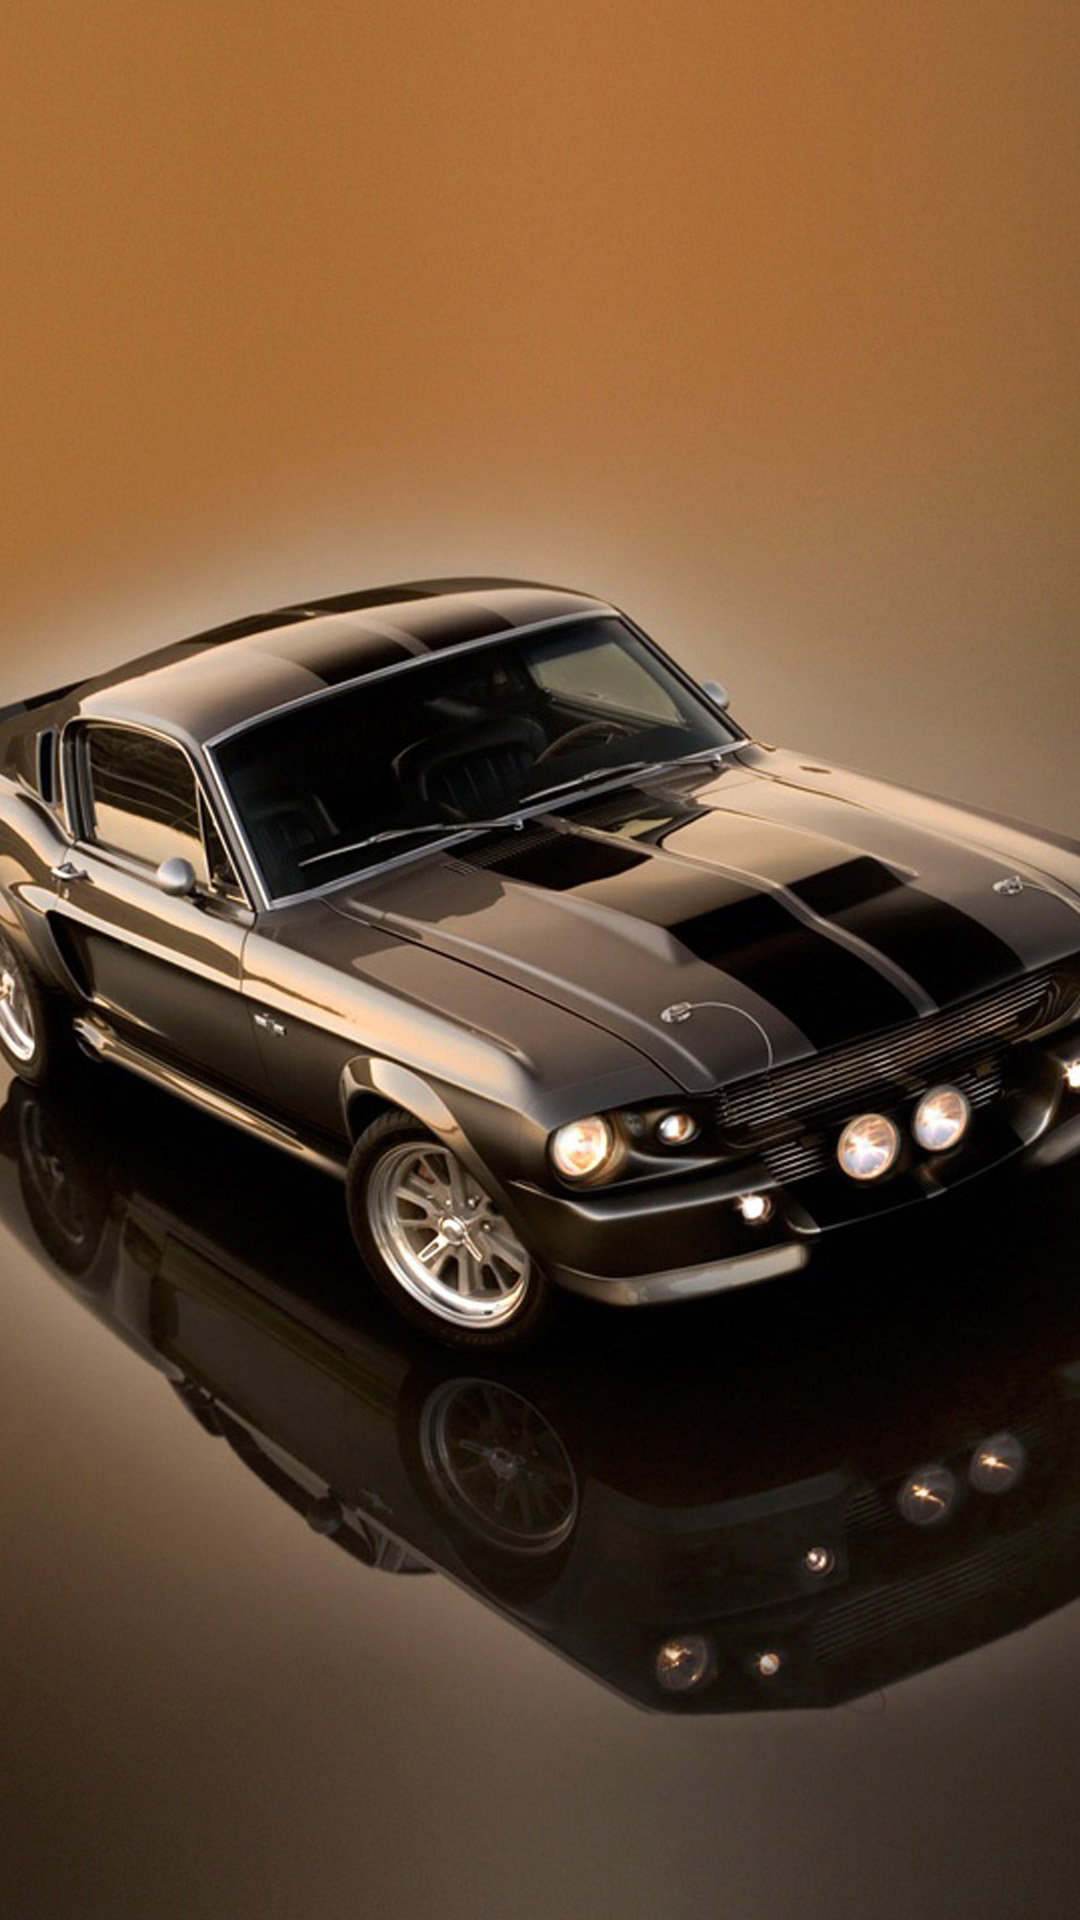 Wallpaperwiki Ford Mustang Shelby GT500 Eleanor HD Wallpaper IPhone